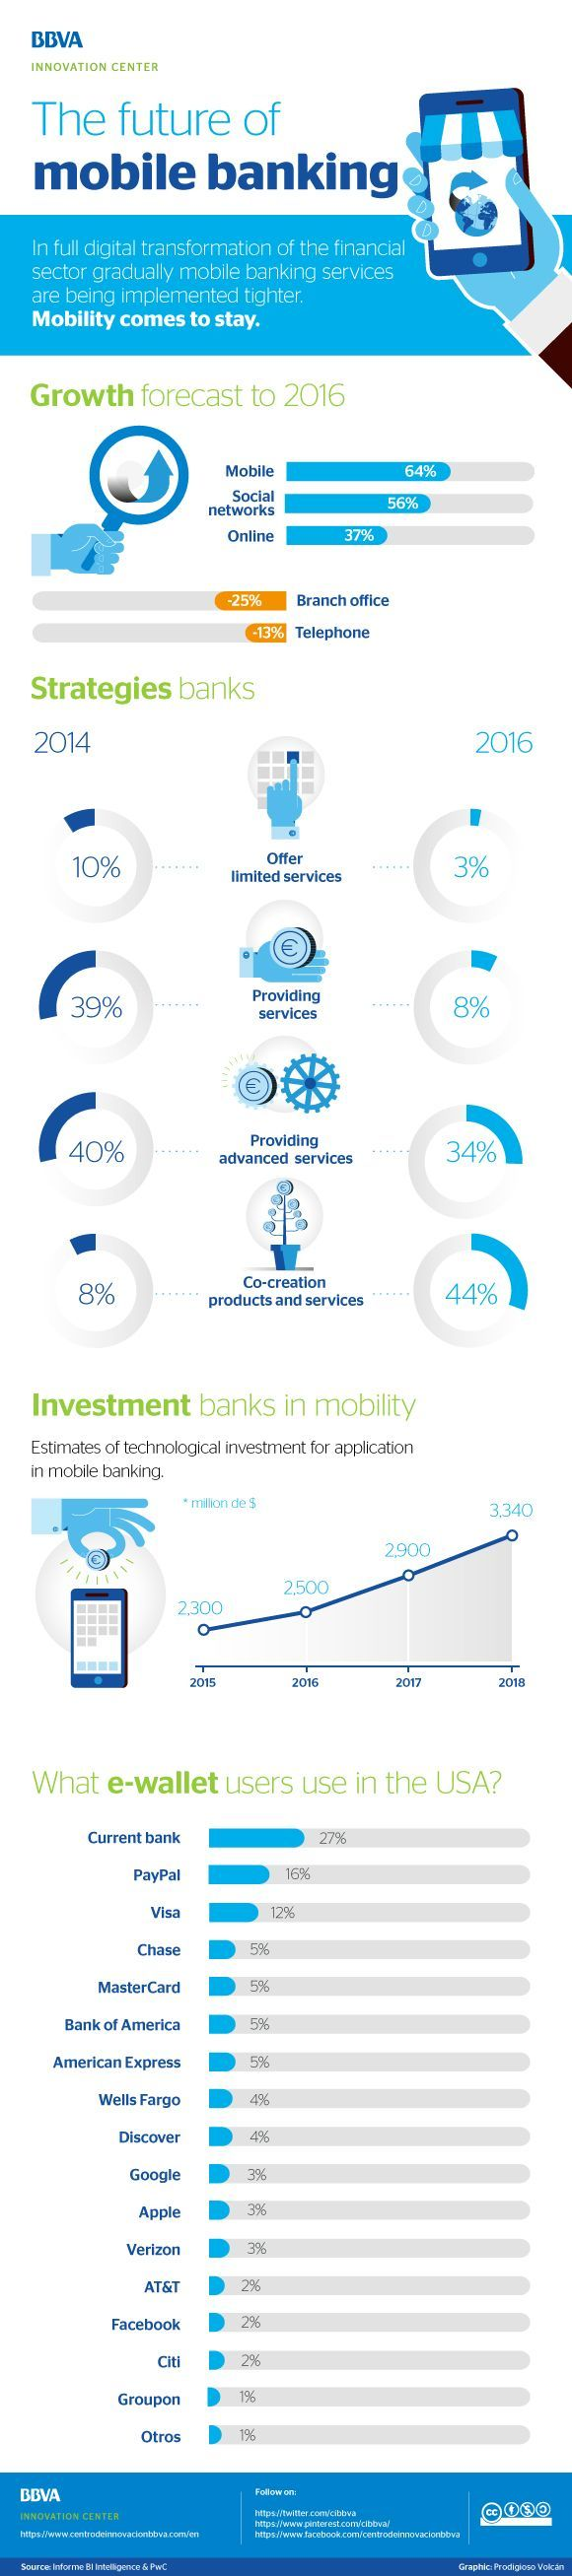 Infographic: The future of mobile banking - BBVA innovation Center